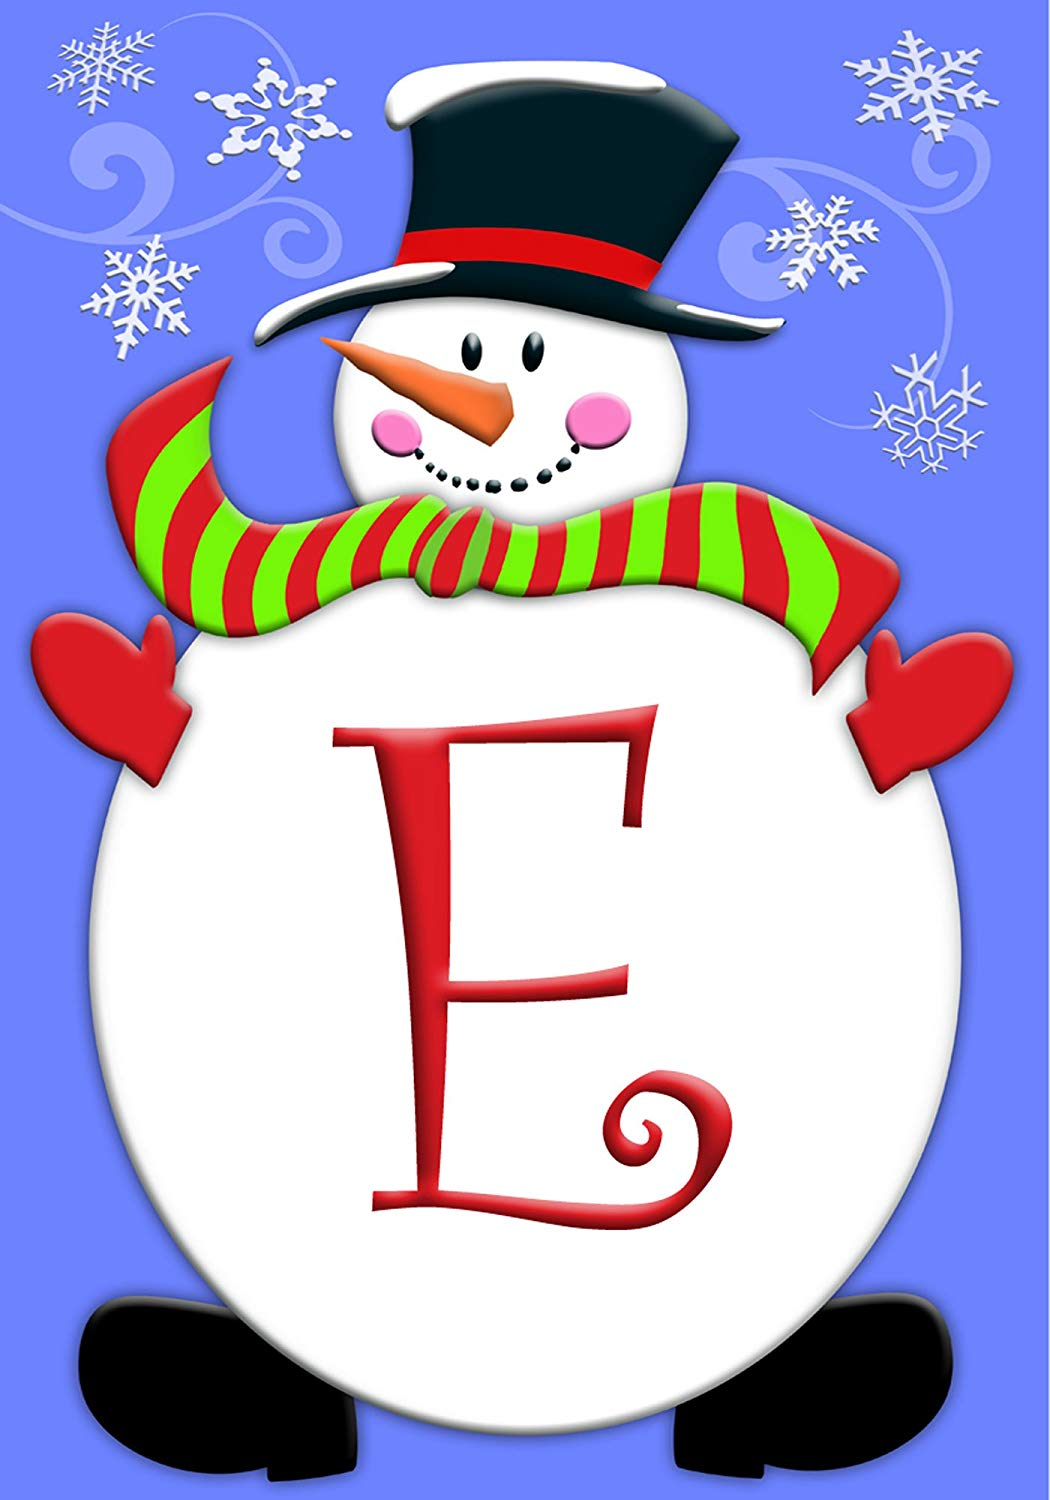 Amazon.com: Winter Christmas Snowman Snowflake Monogram E.